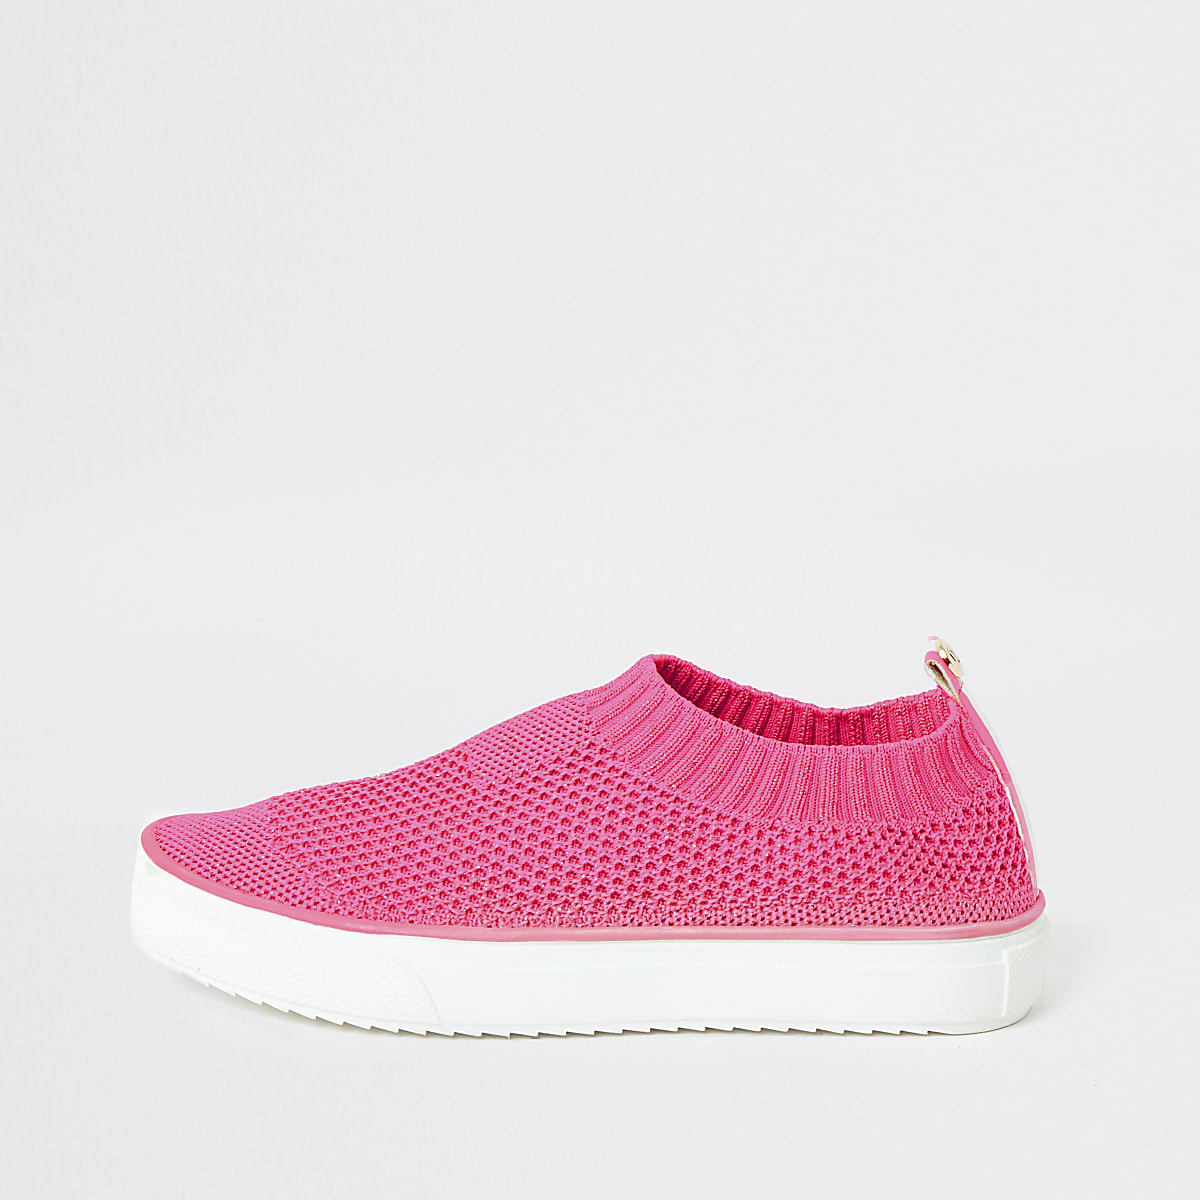 Girls pink knit plimsoll